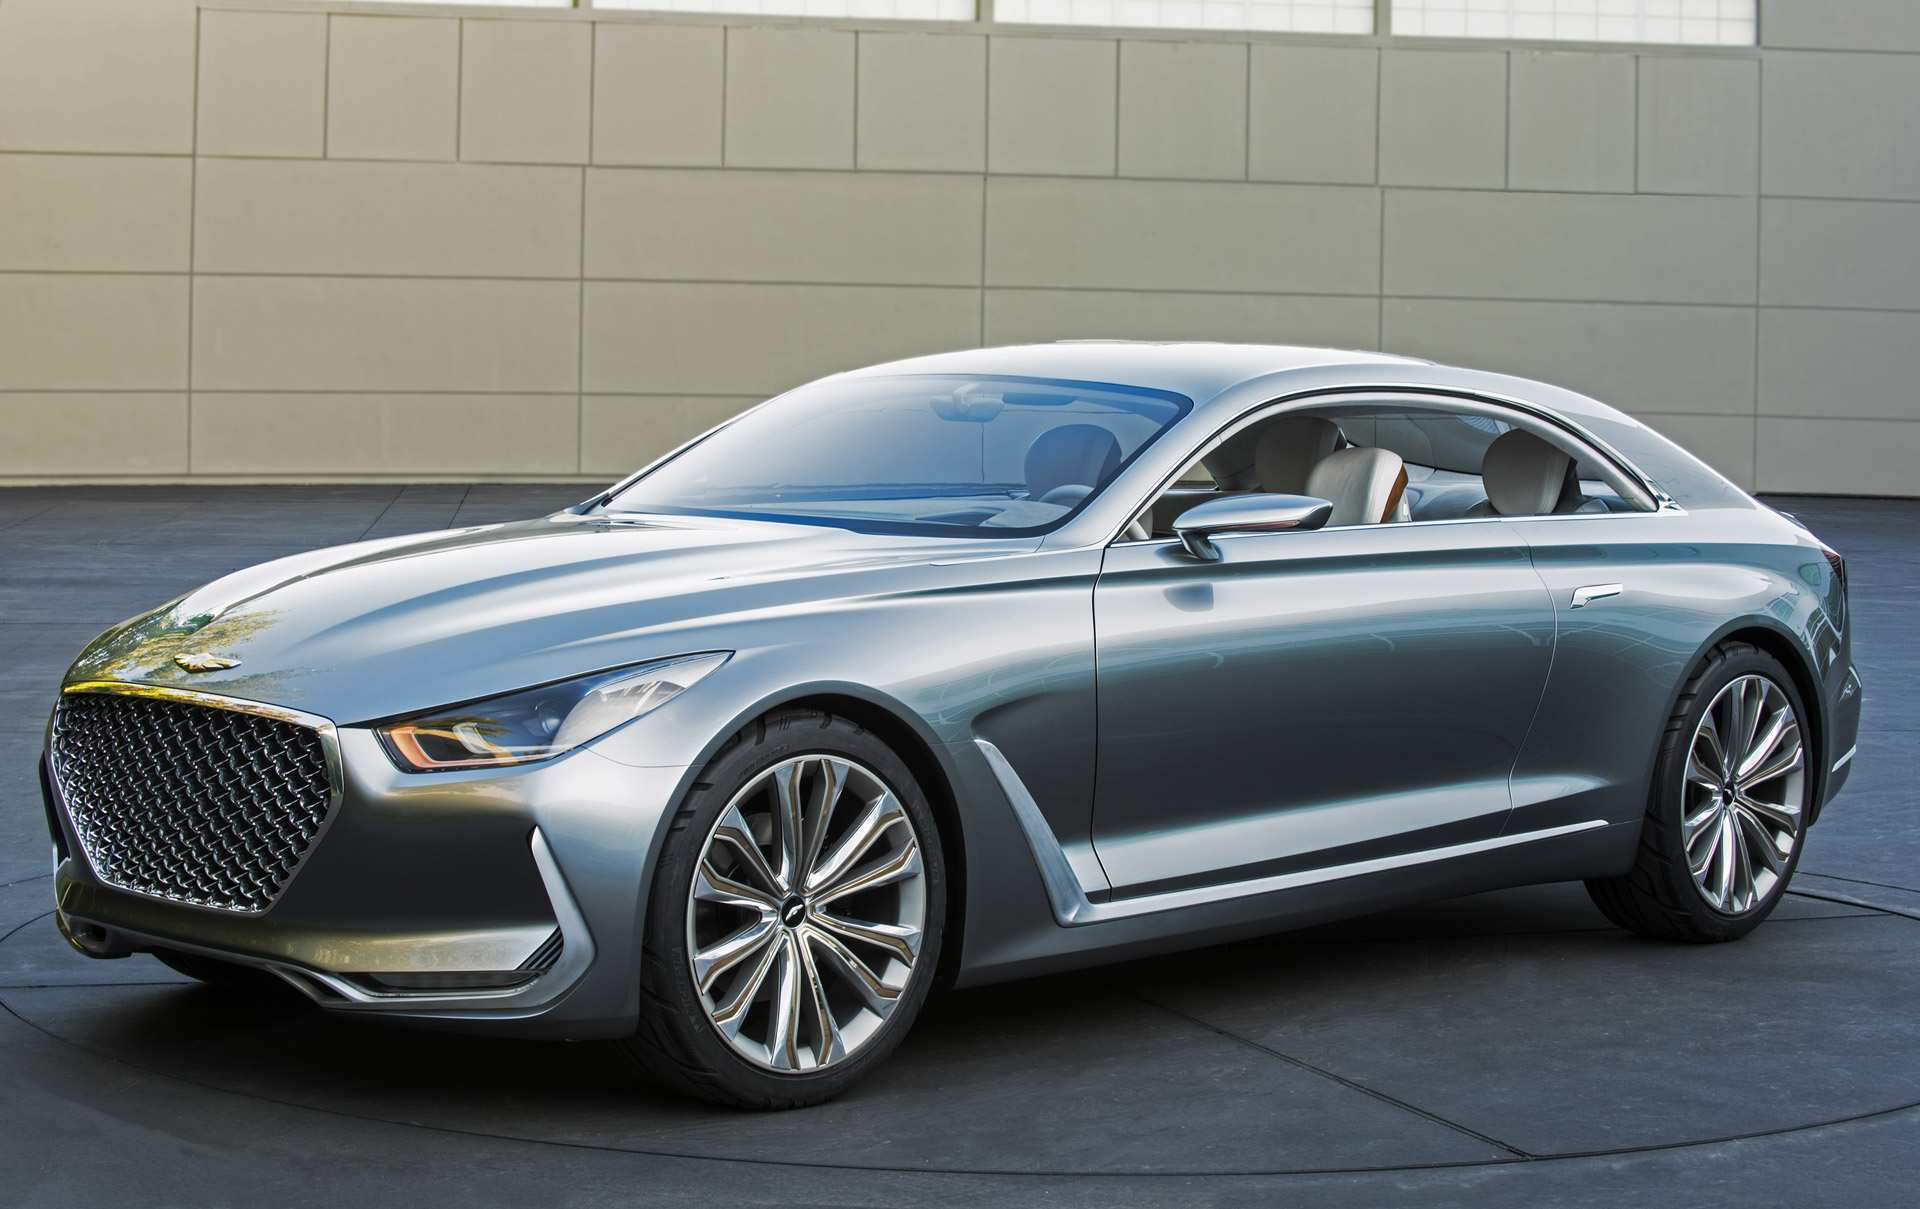 37 All New 2020 Hyundai Genesis Review